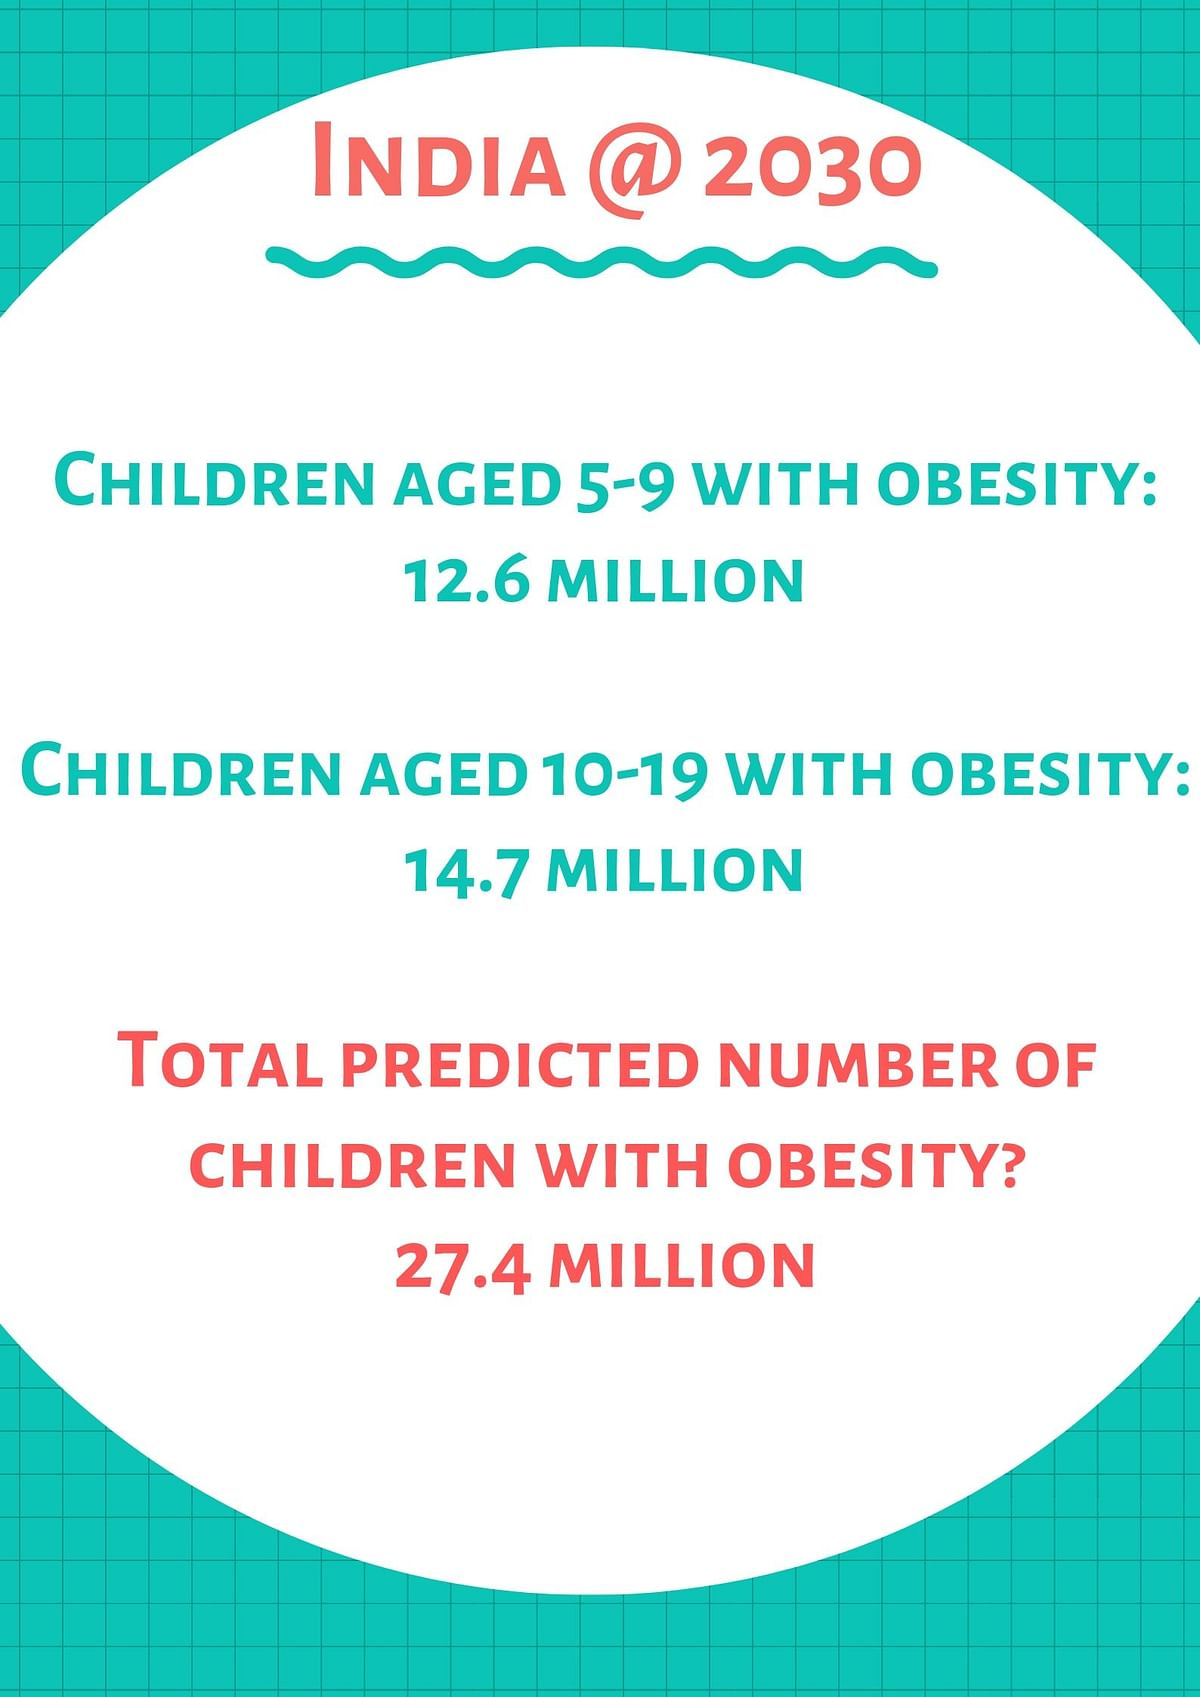 How does childhood obesity look like in 2030 India?